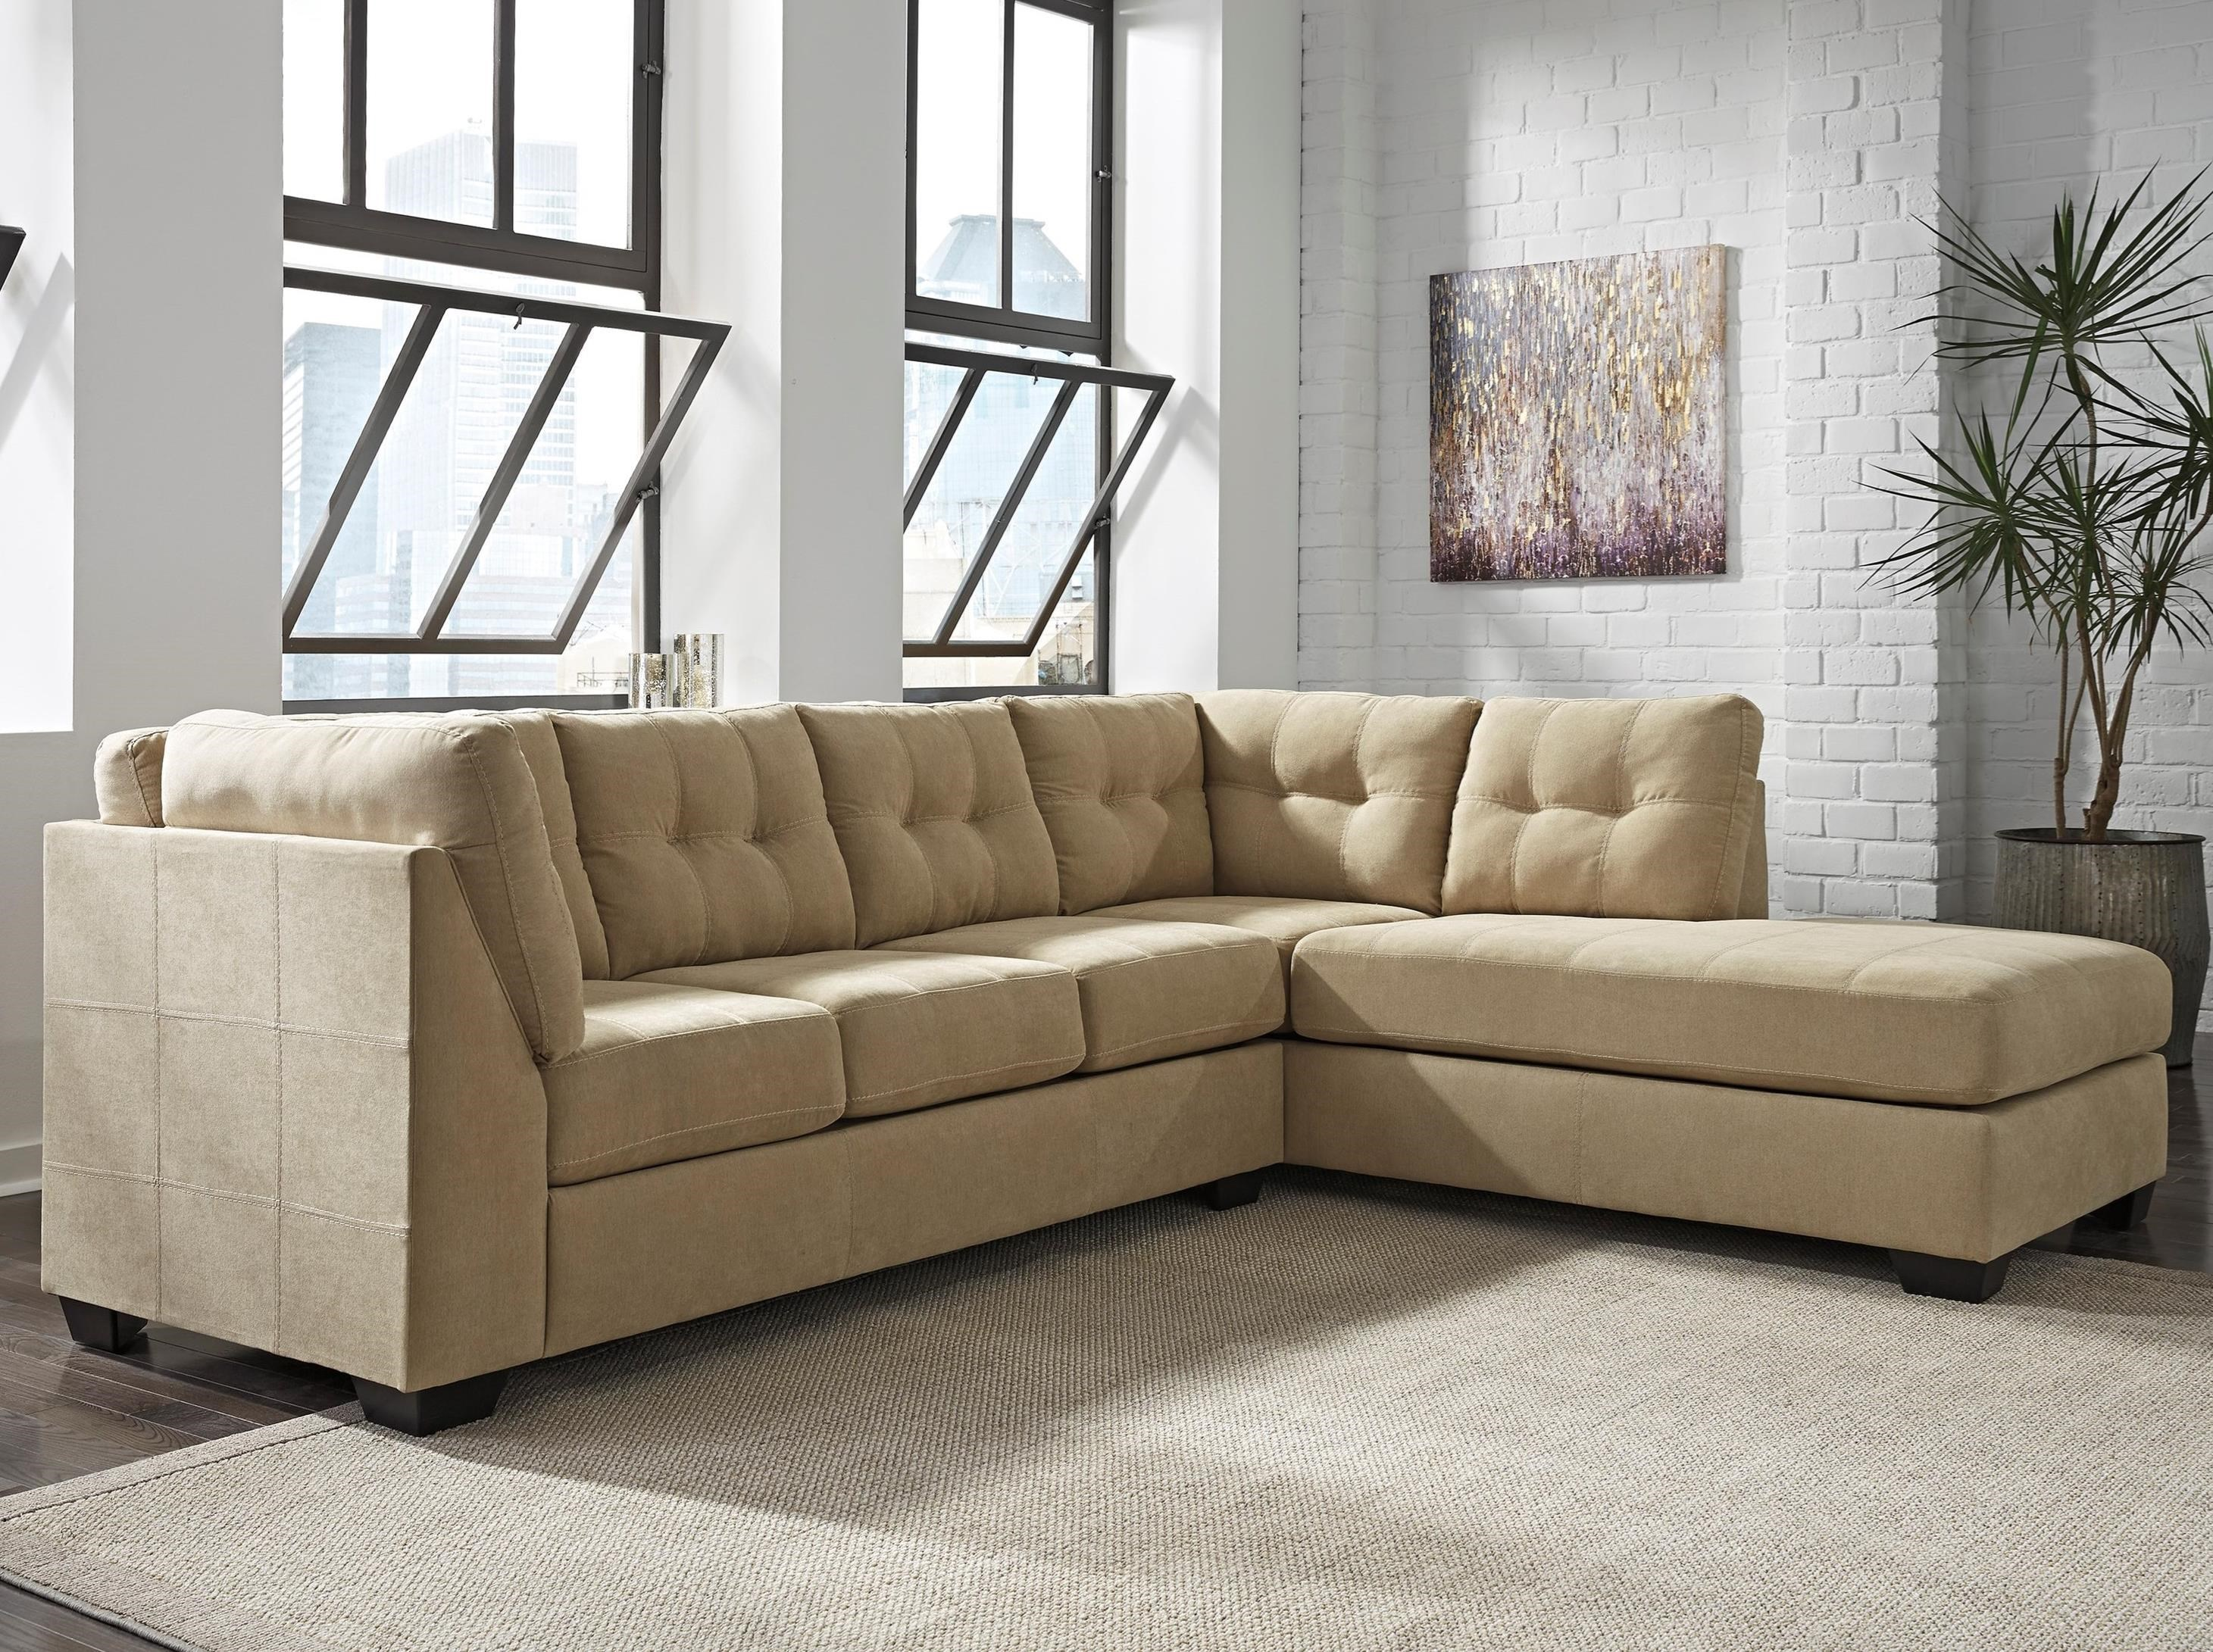 Benchcraft Maier   Cocoa 2 Piece Sectional W/ Sleeper Sofa U0026 Right Chaise